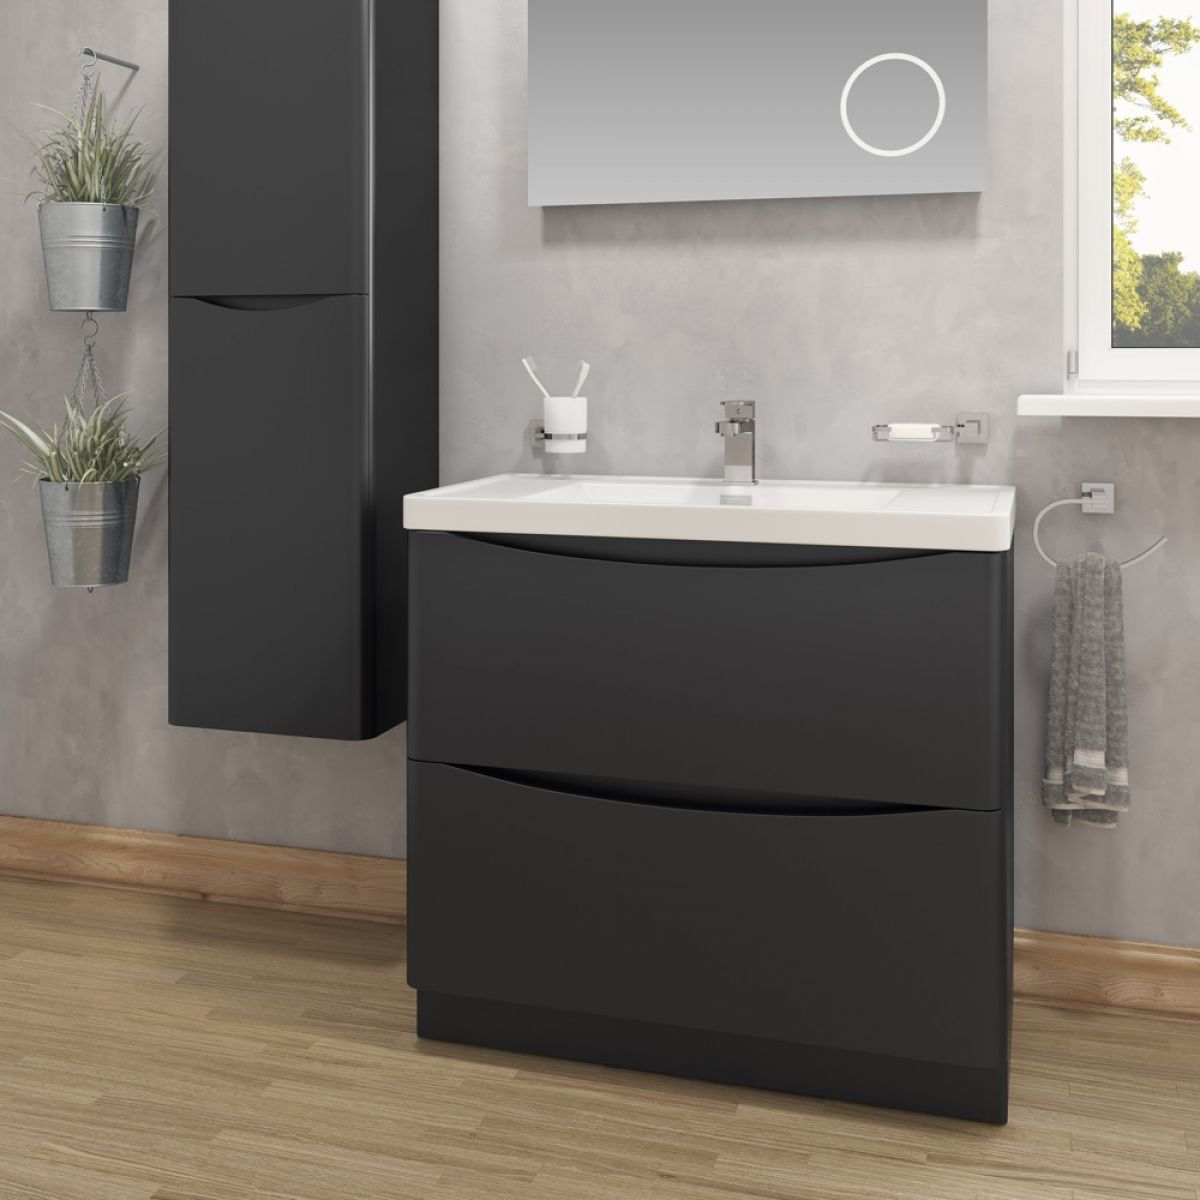 Bali Matt Black Wall Mounted Vanity Unit 600mm Lifestyle